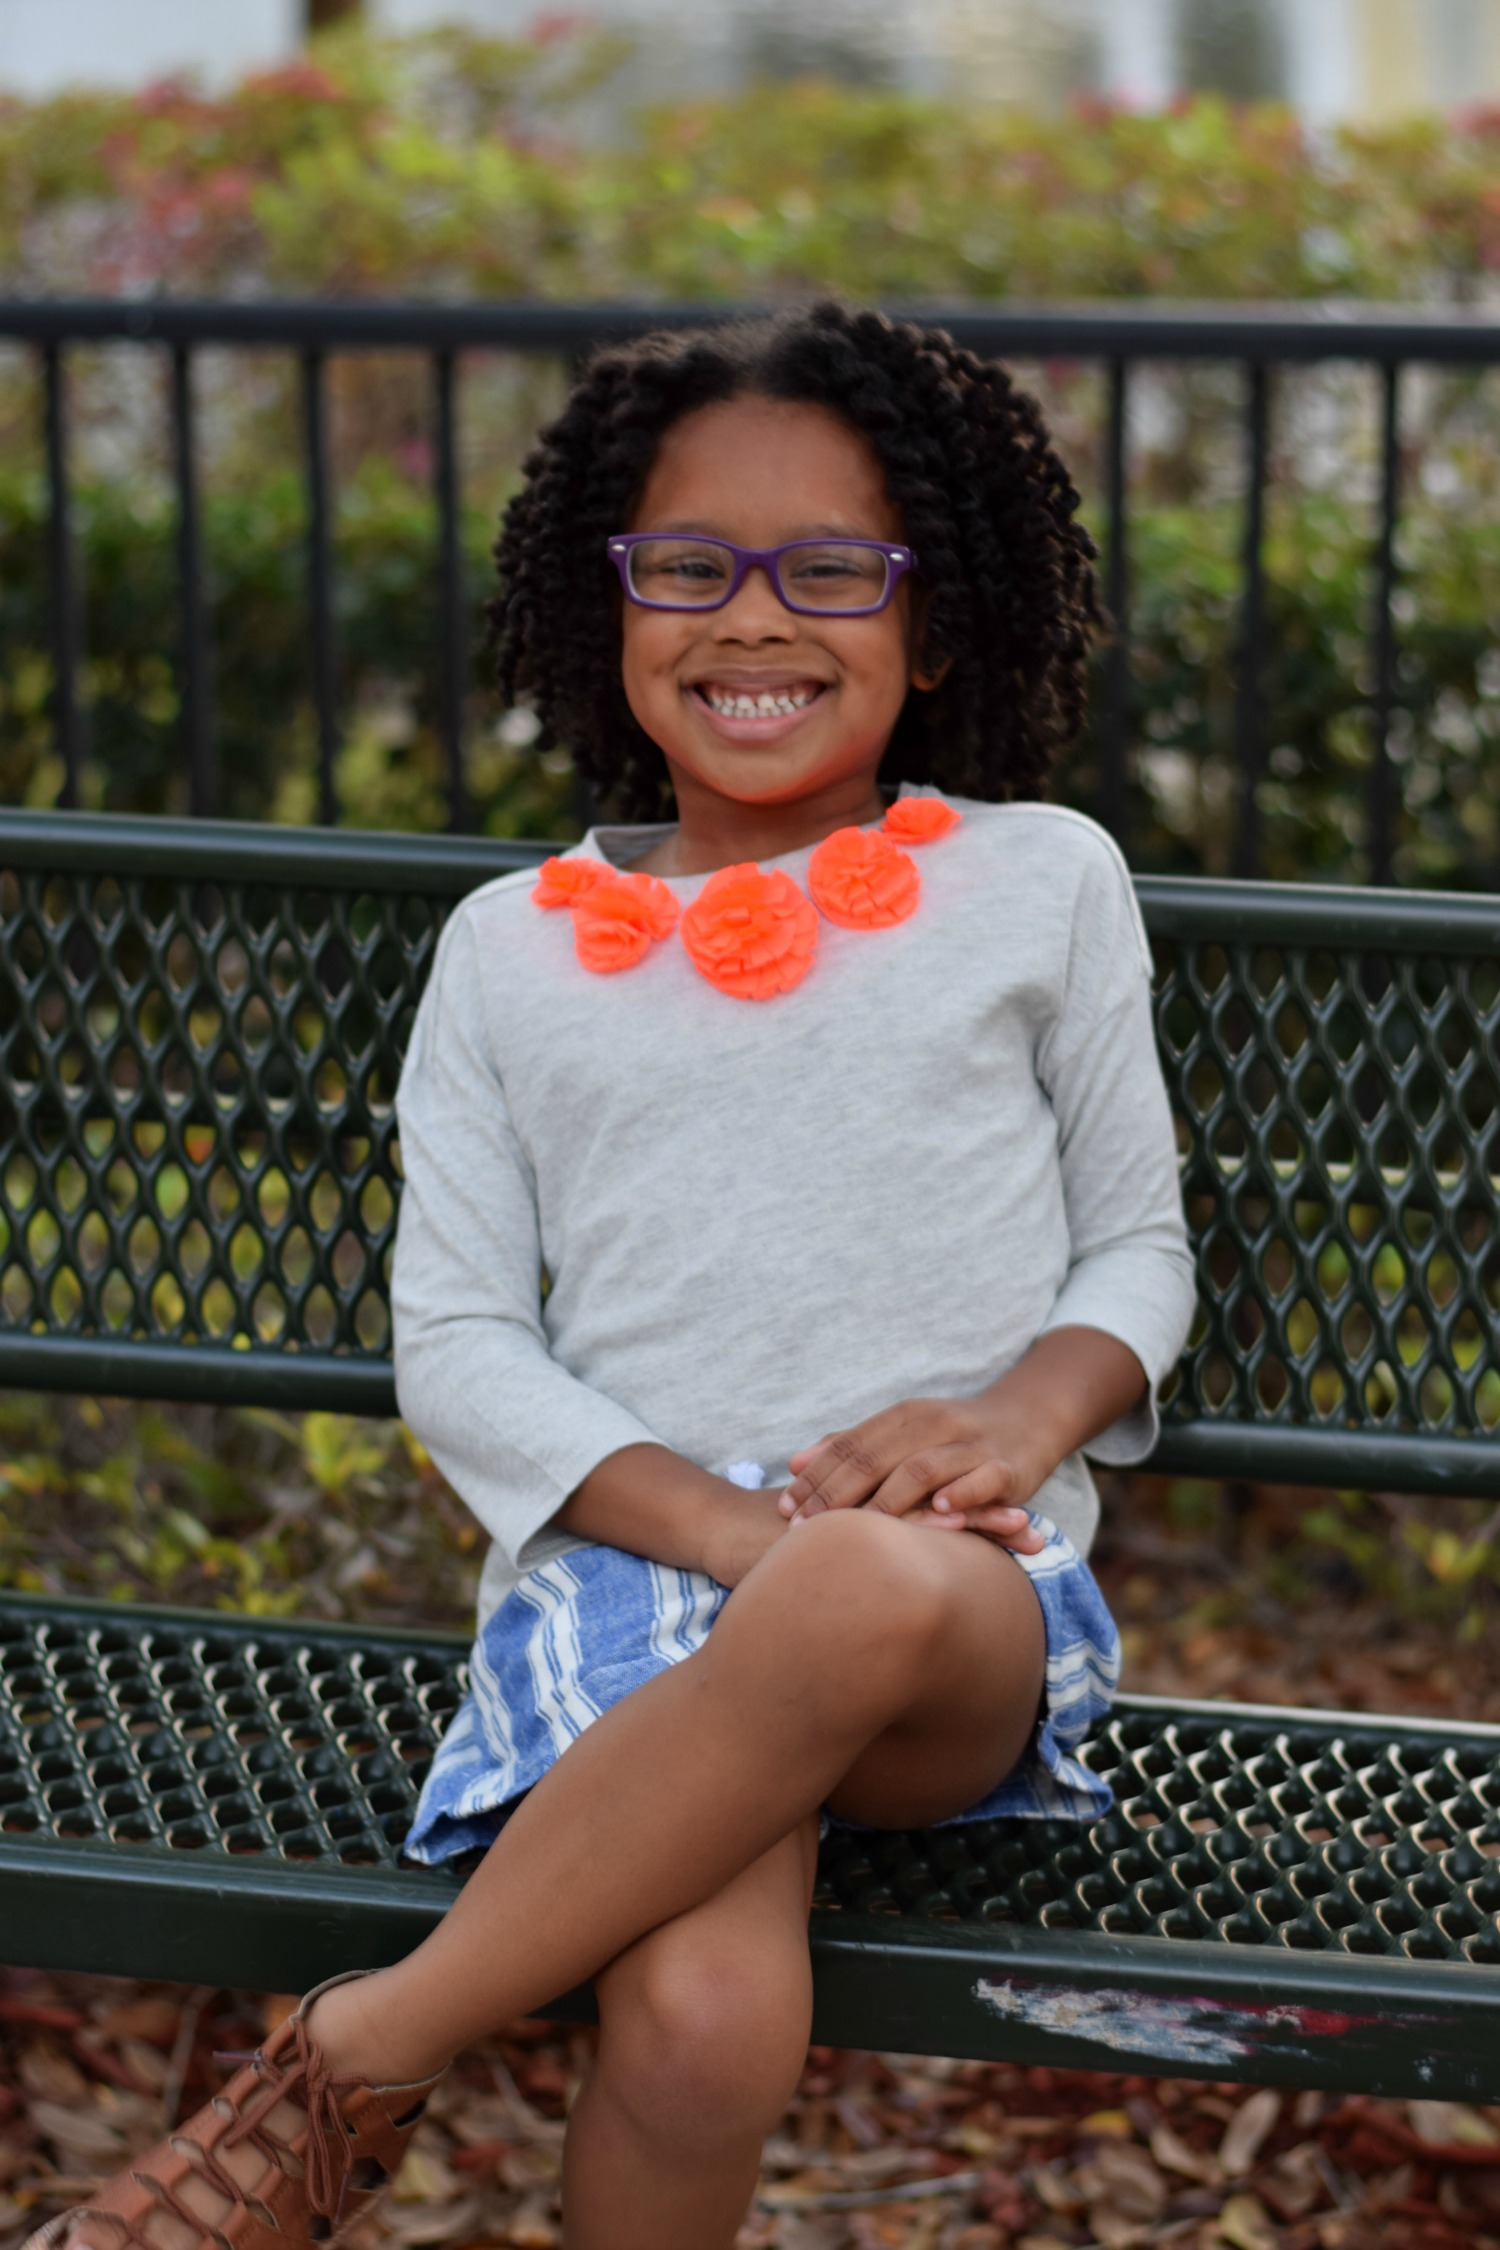 Orlando lifestyle blogger Bianca Dottin shares Spring Break packing tips in partnership with Osh Kosh B'Gosh